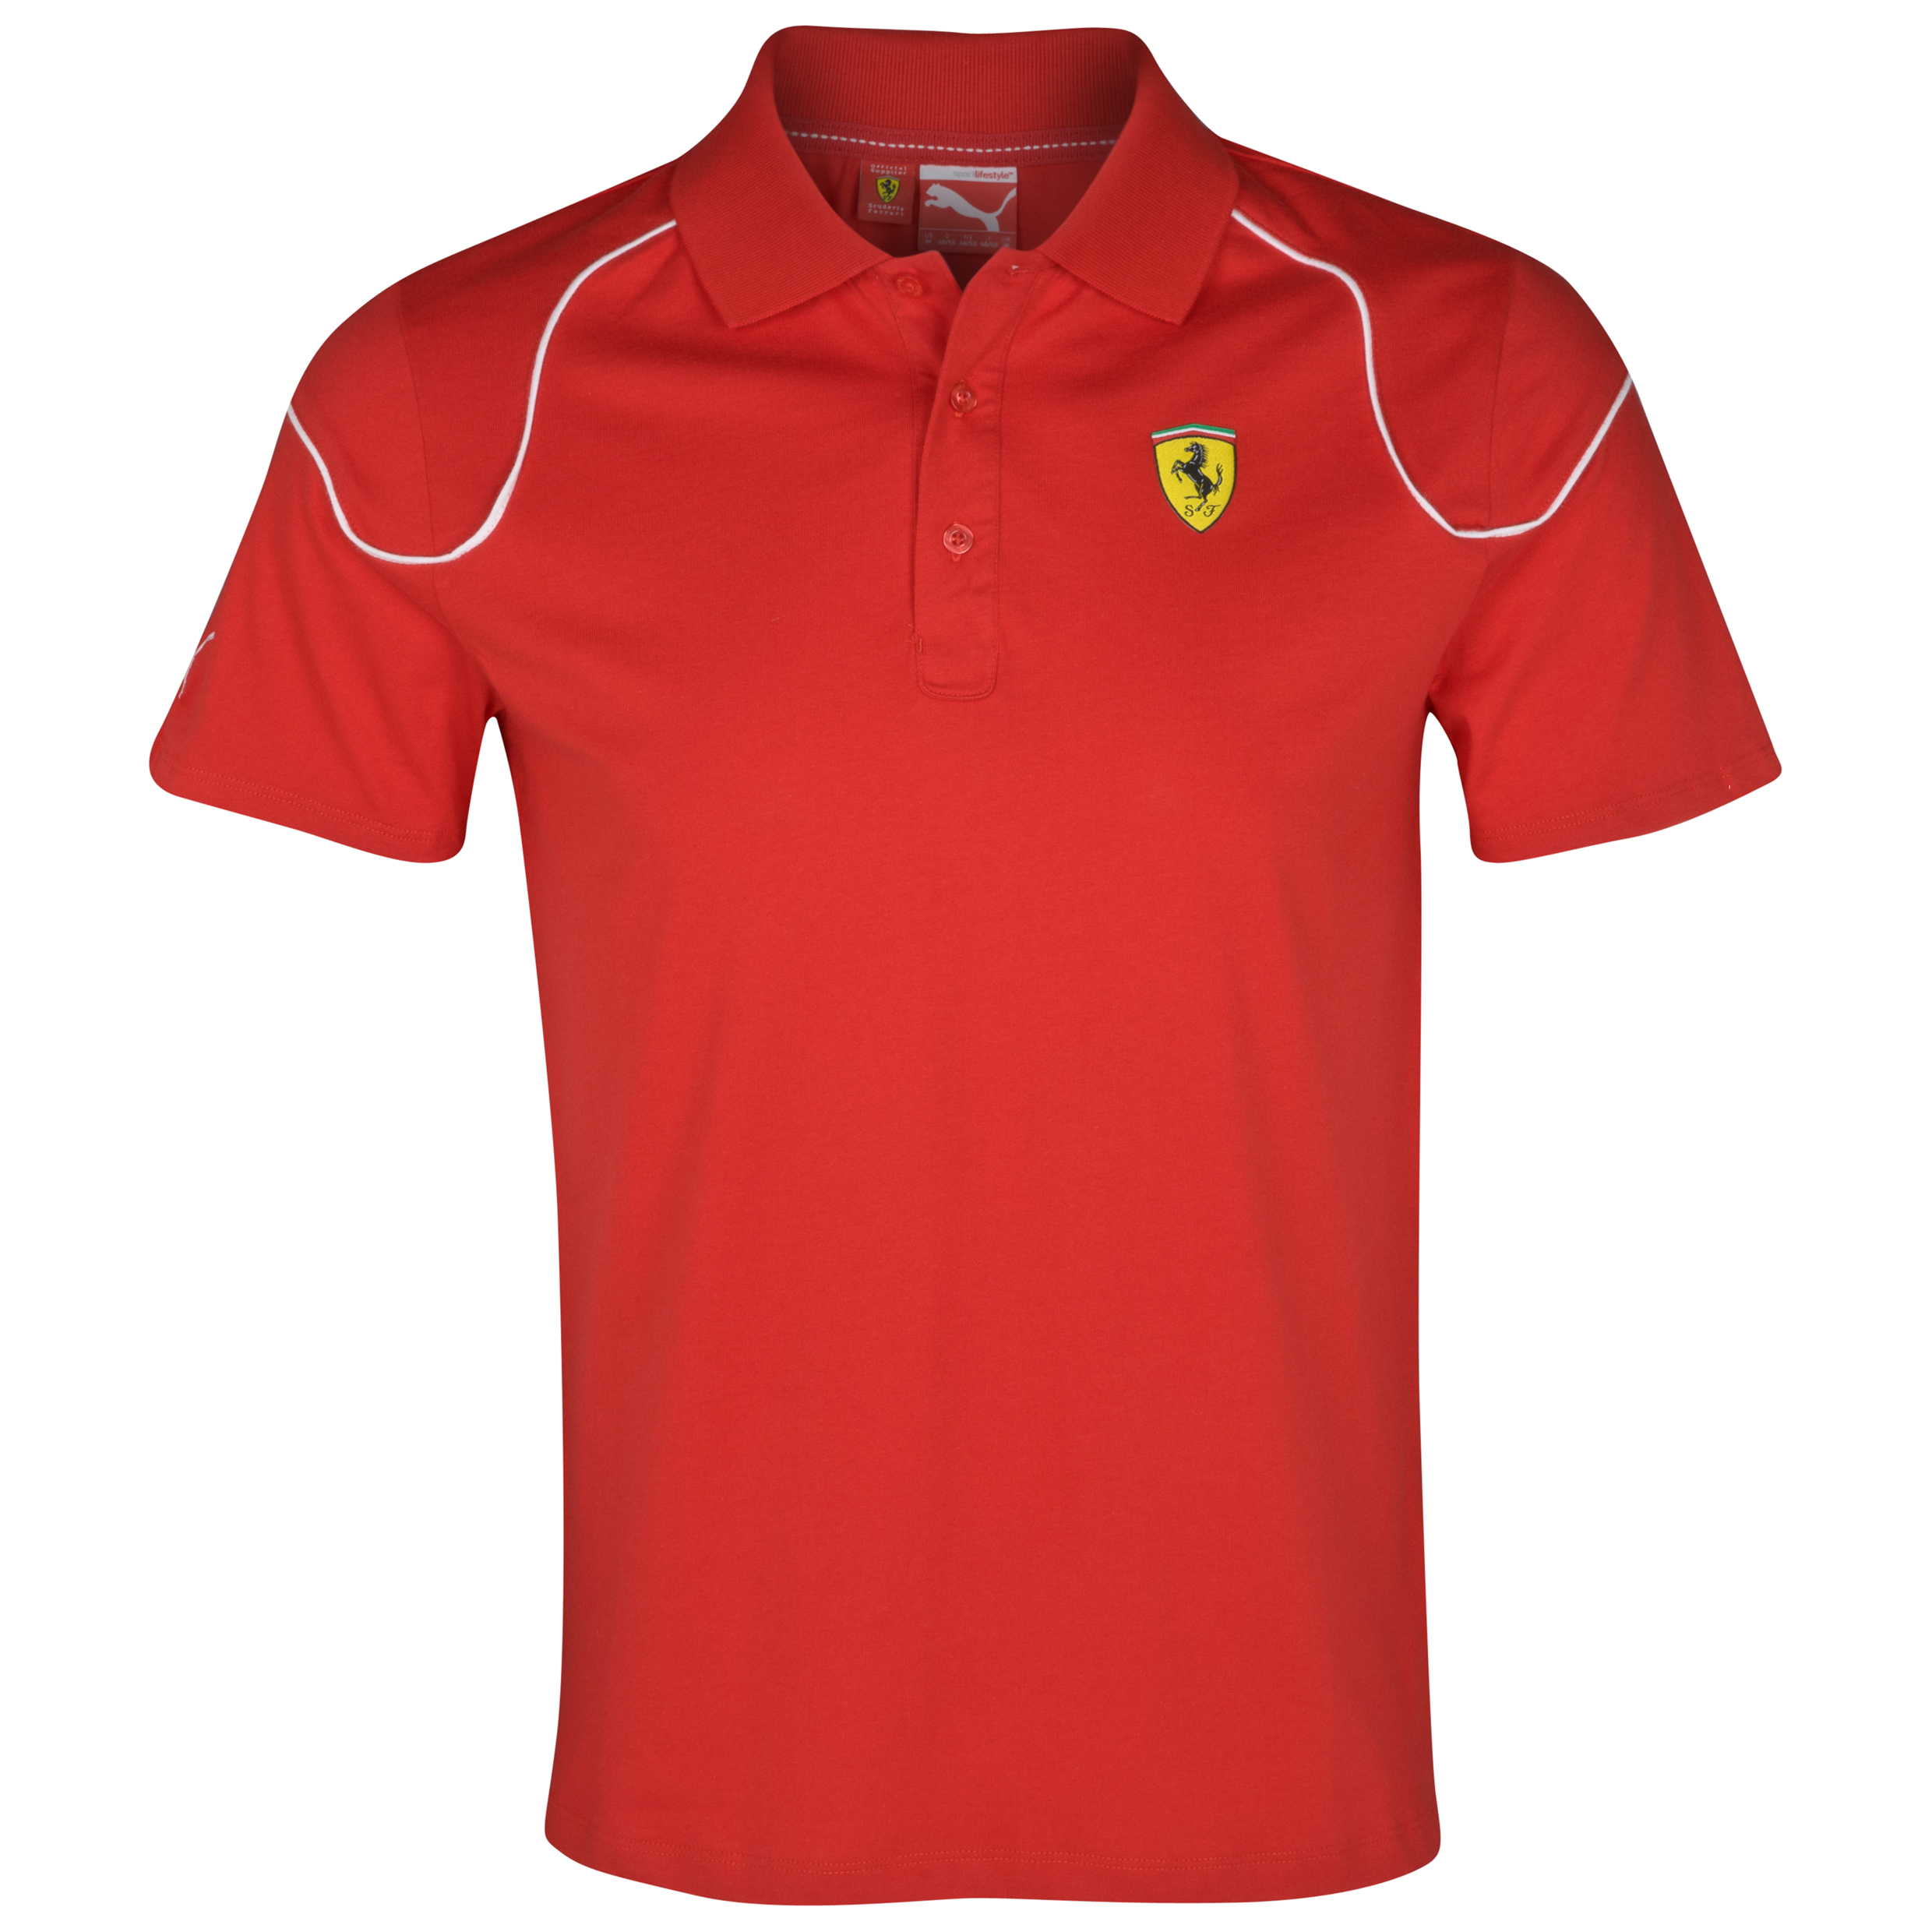 Scuderia Ferrari Polo - Rosso Corsa